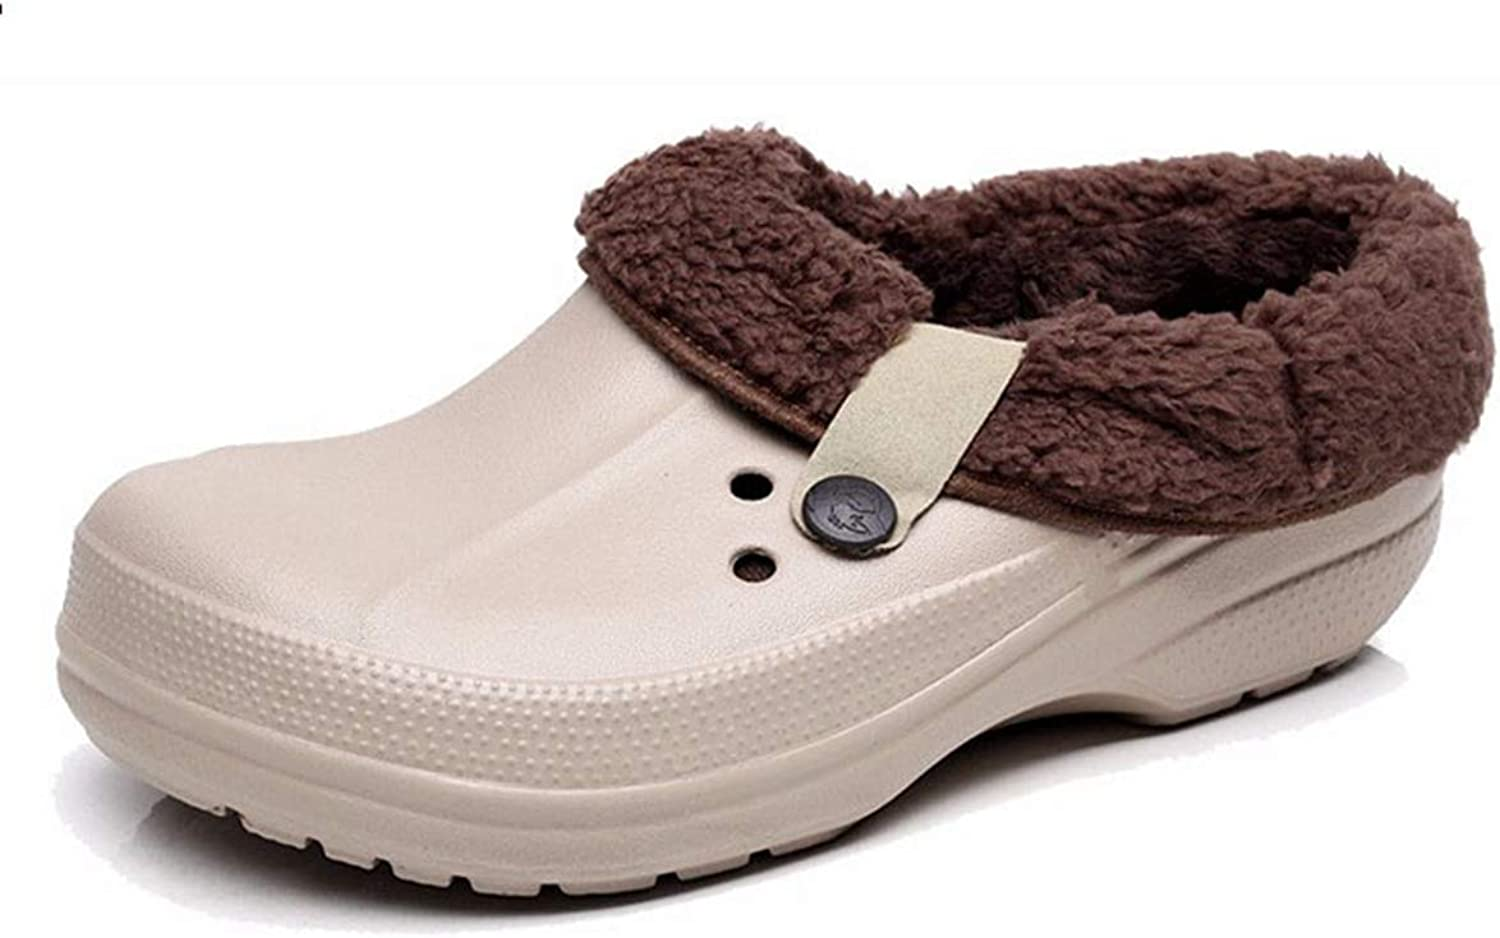 SANOMY Women's Winter Warm Clogs Candy color Garden shoes EVA Waterproof Slippers for Indoor, Outdoor